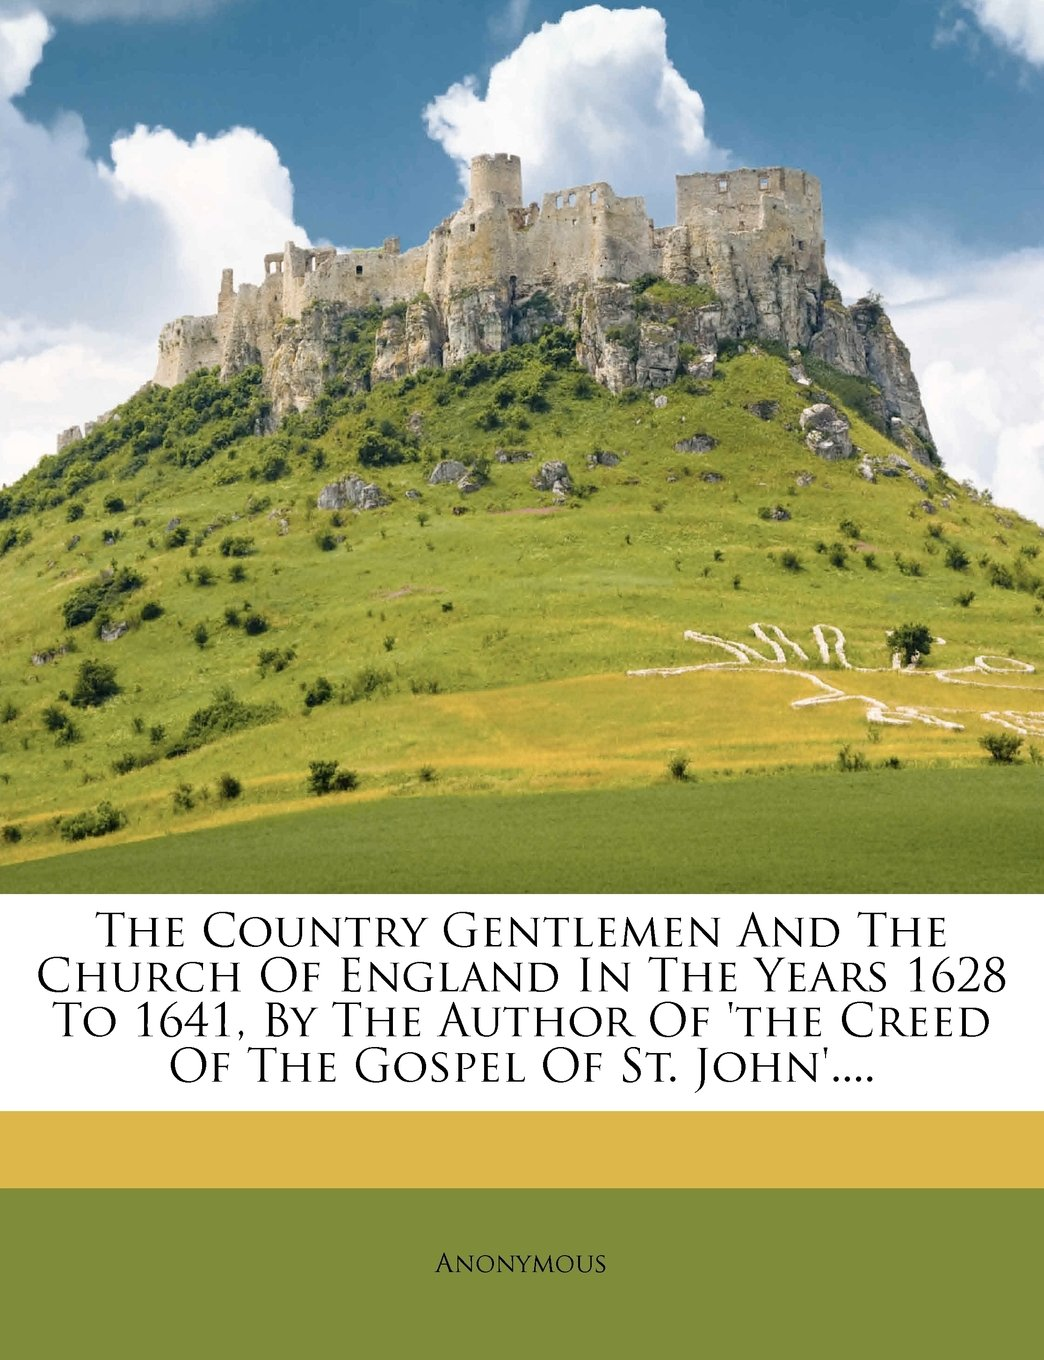 Download The Country Gentlemen And The Church Of England In The Years 1628 To 1641, By The Author Of 'the Creed Of The Gospel Of St. John'.... pdf